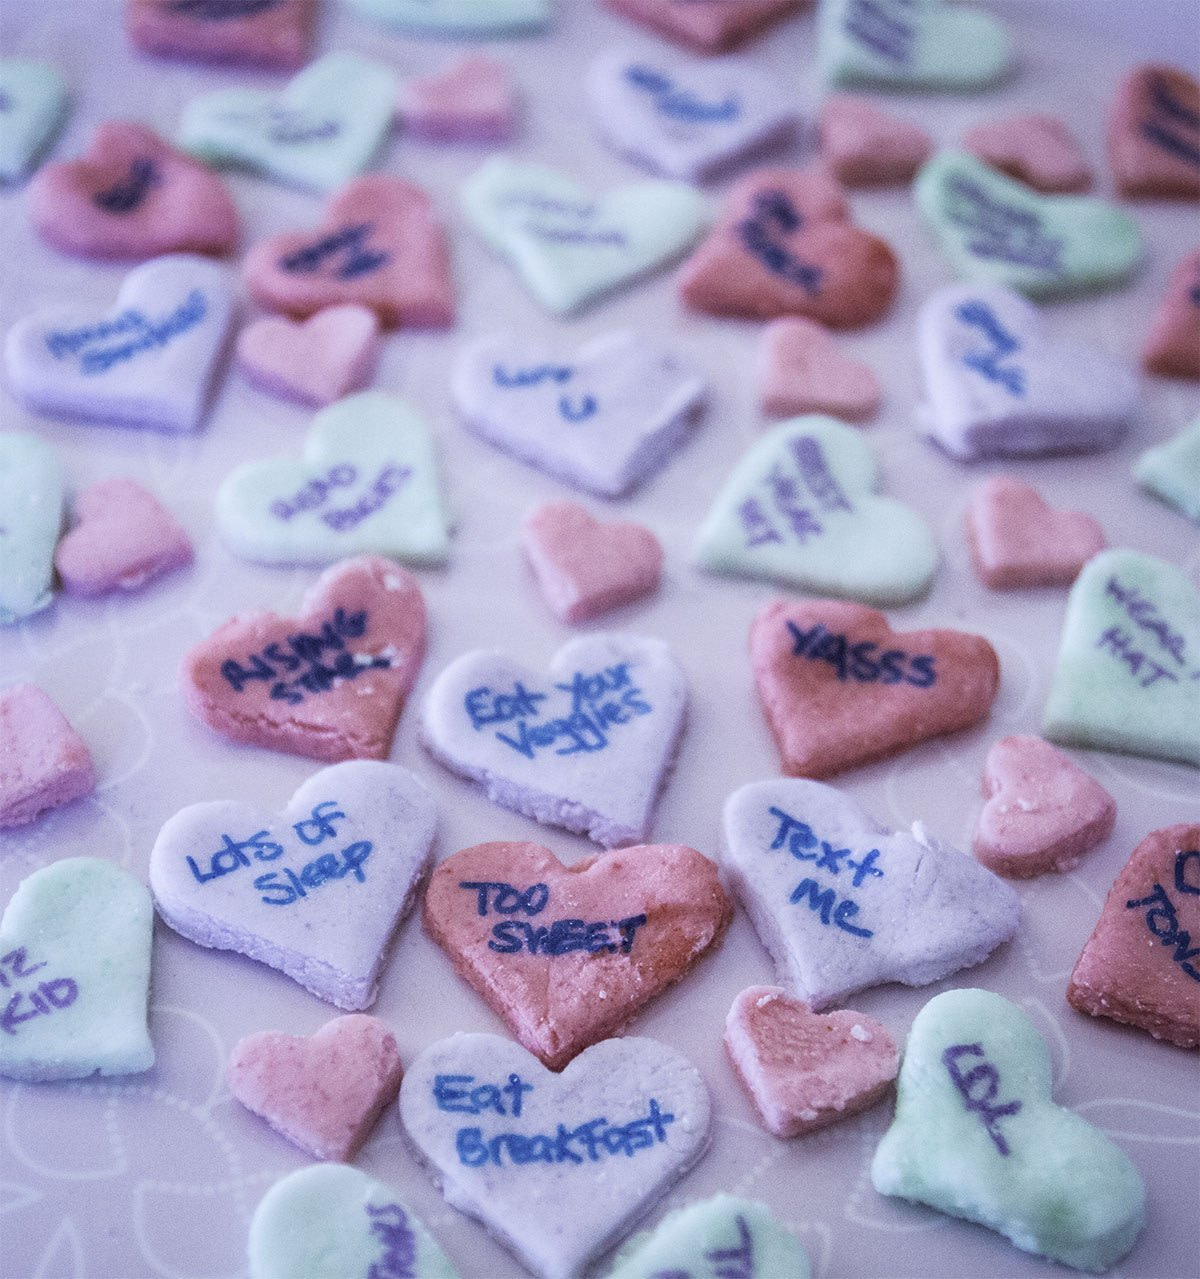 These homemade candy hearts taste better than the kind you can buy in the store and you can add your own message to them! They're perfect for care packages of all kinds - especially for college students.